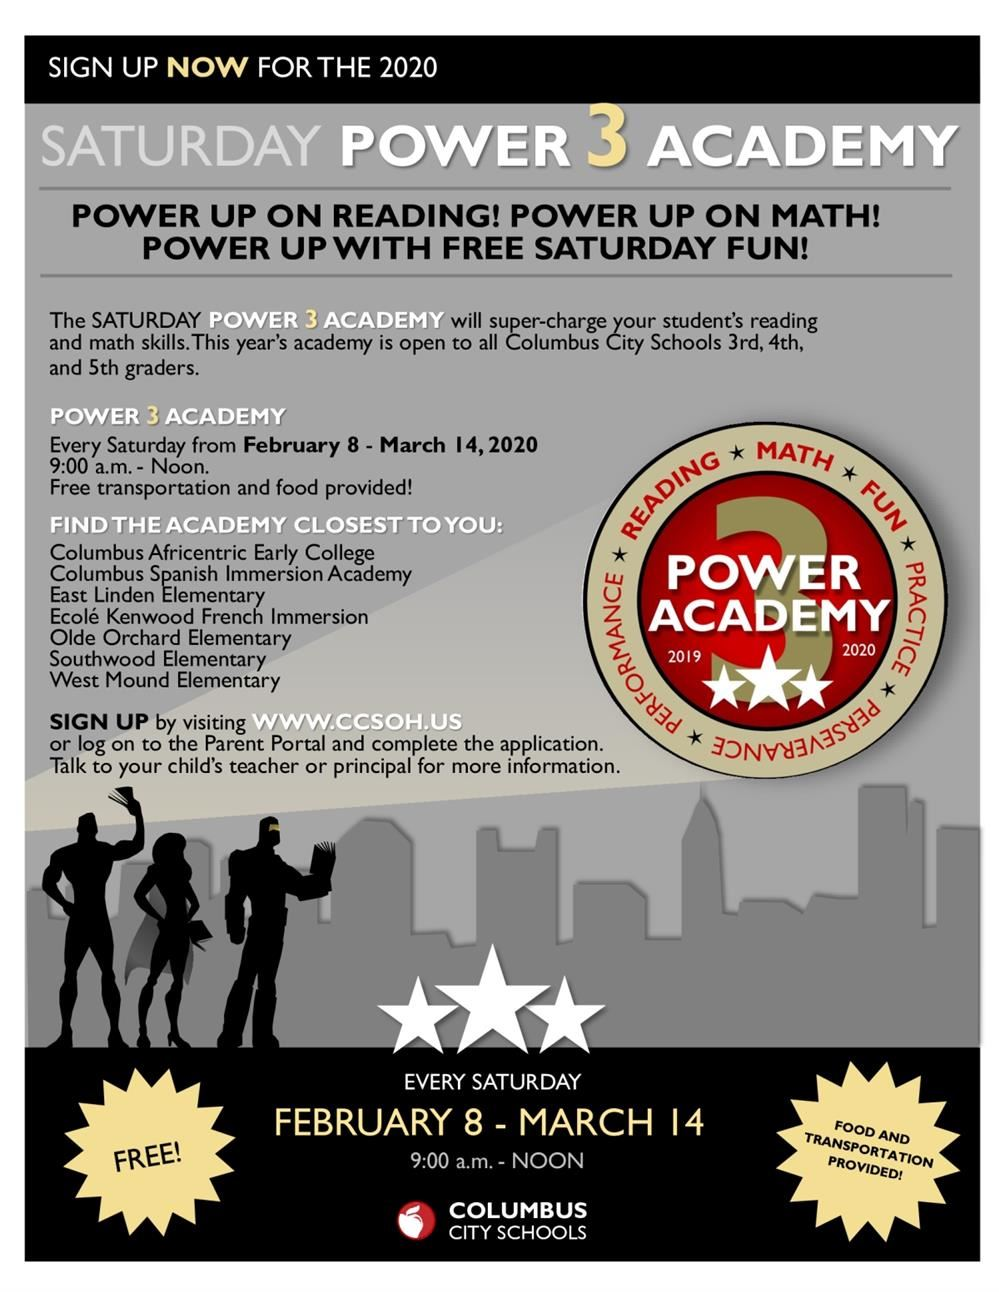 Saturday Power 3 Academy at CSIA Februray 3 thru March 4 from 9:00 - 12:00 PM every Saturday.